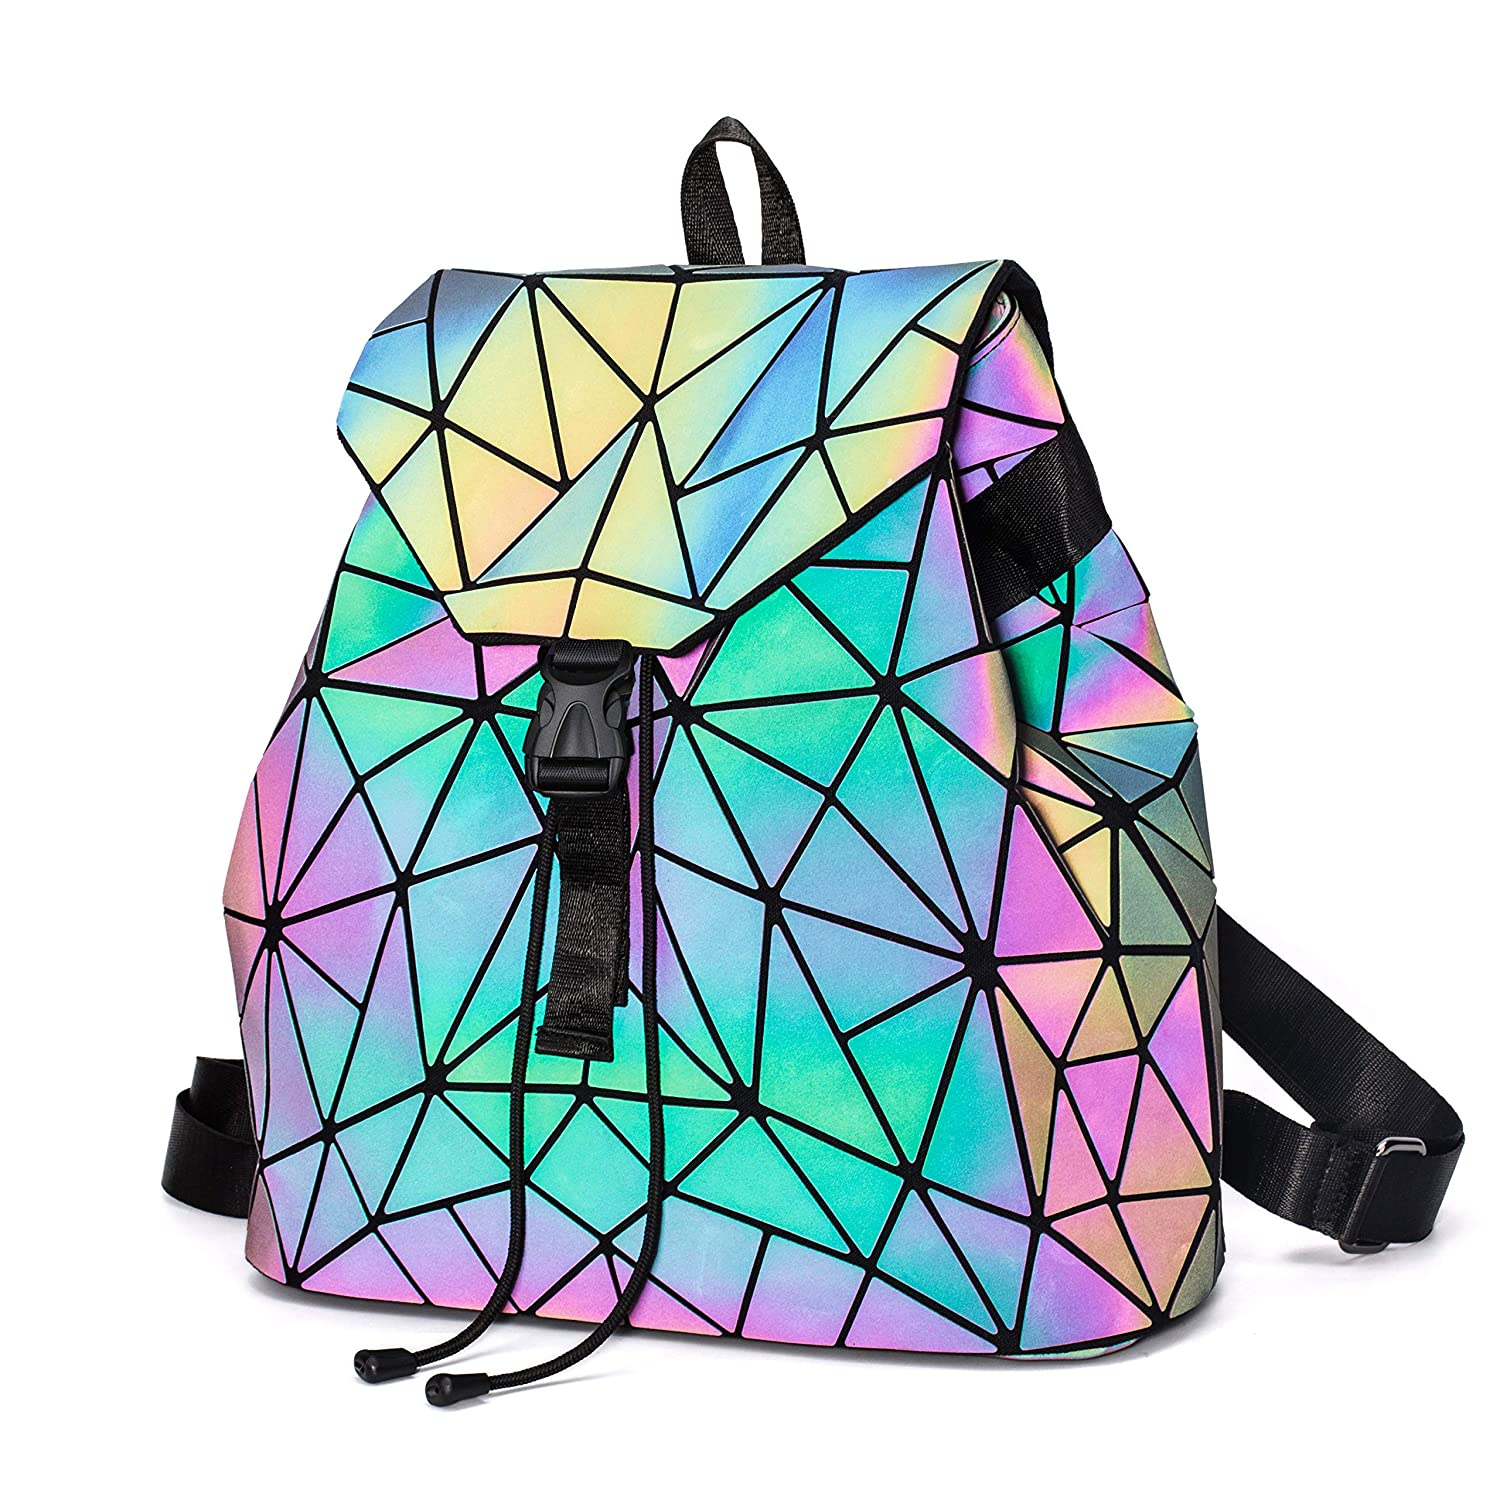 eae0dc49313a Geometric Backpack Luminous Backpacks Holographic Reflective Bag Lumikay  Bags Irredescent Rucksack Rainbow NO.2